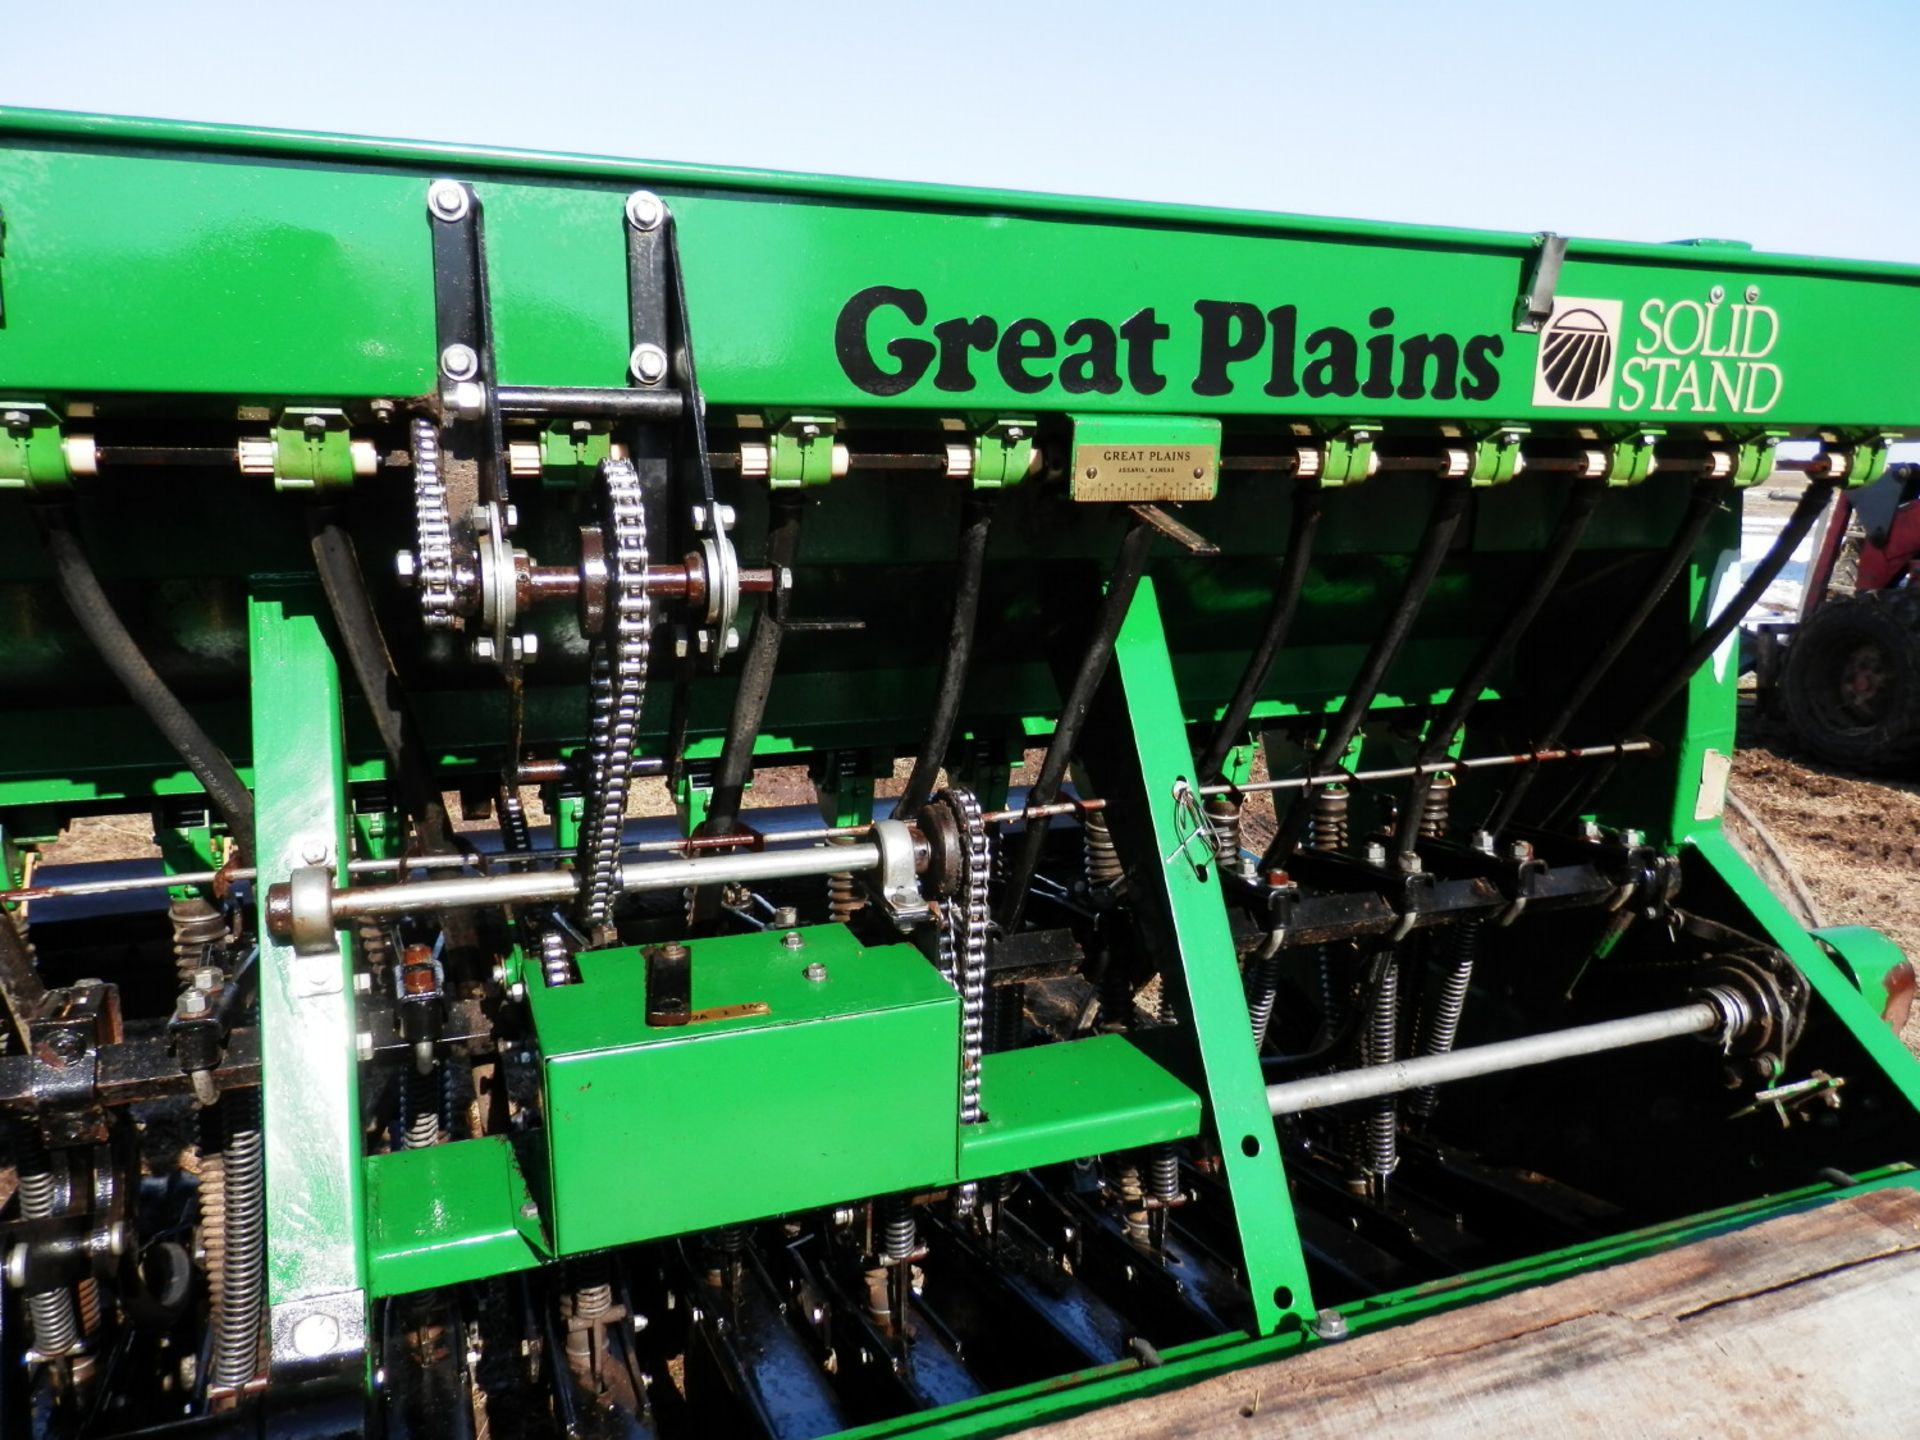 GREAT PLAINS SURESTAND 13 MDL EWD13-260693 26x6 GRAIN DRILL - Image 6 of 11